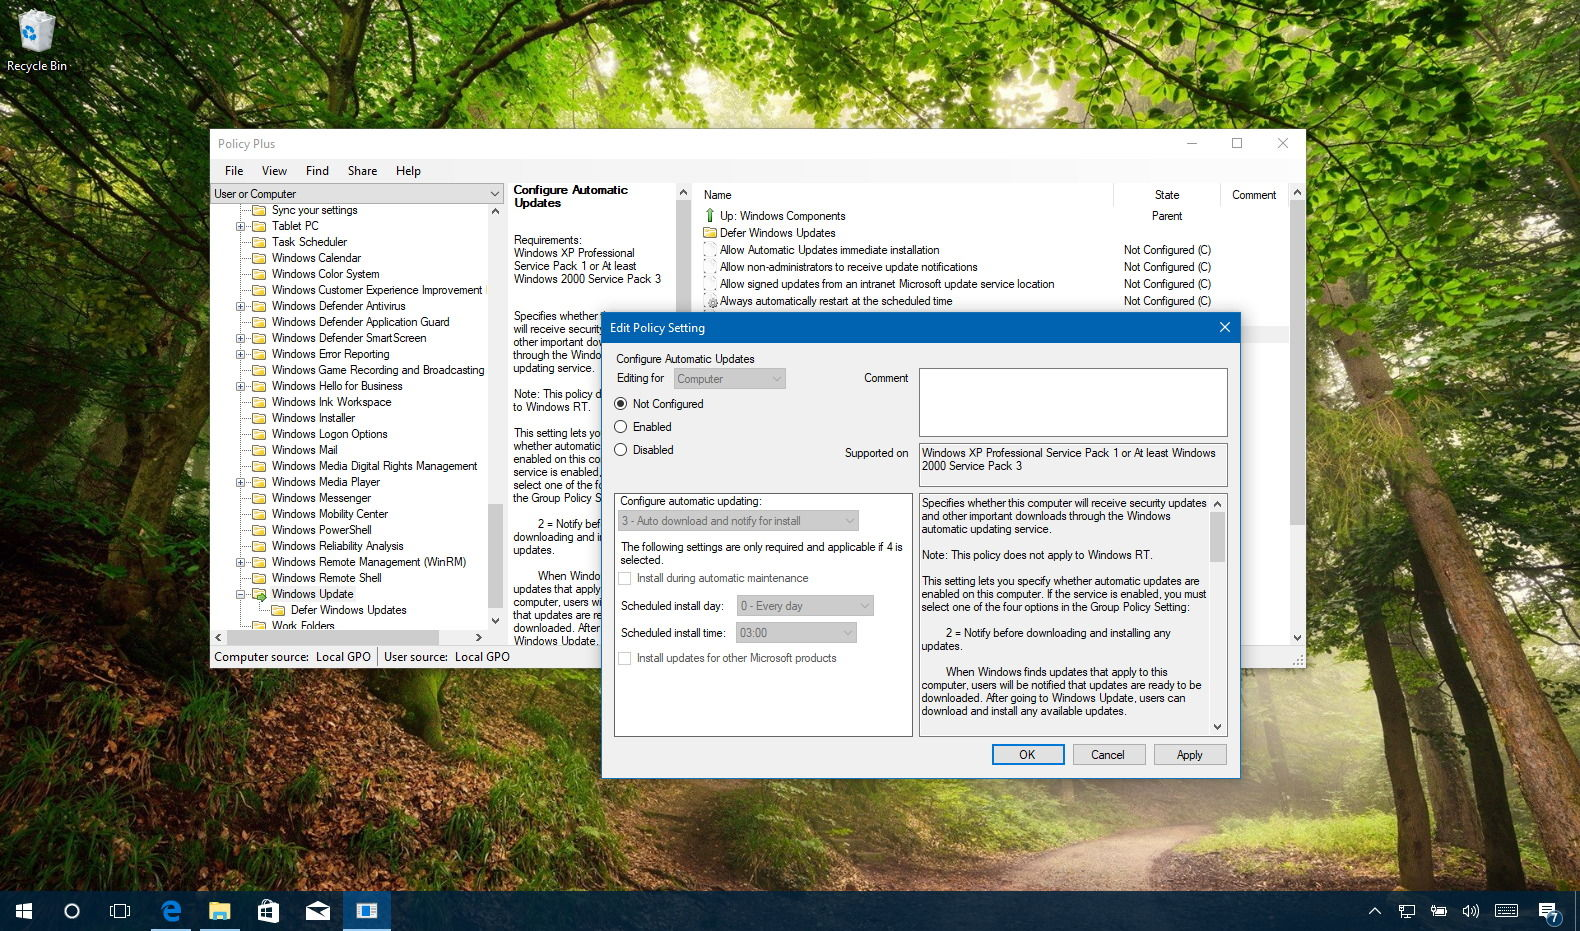 group policy setting on windows 10